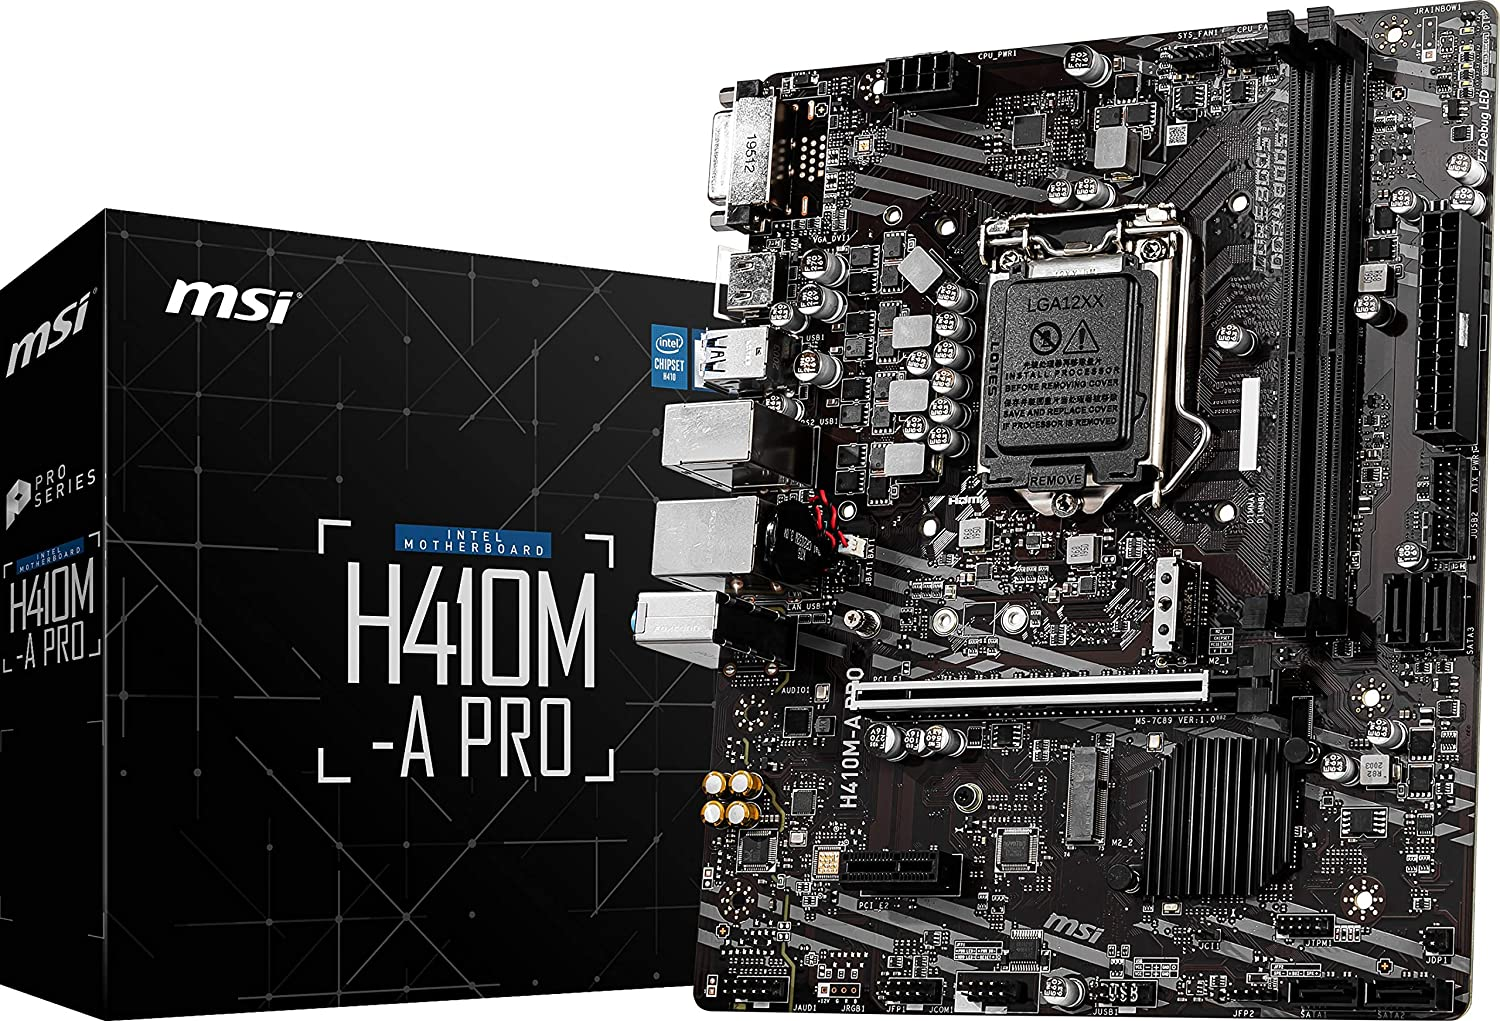 MSI MOTHERBOARD H410M-A PRO